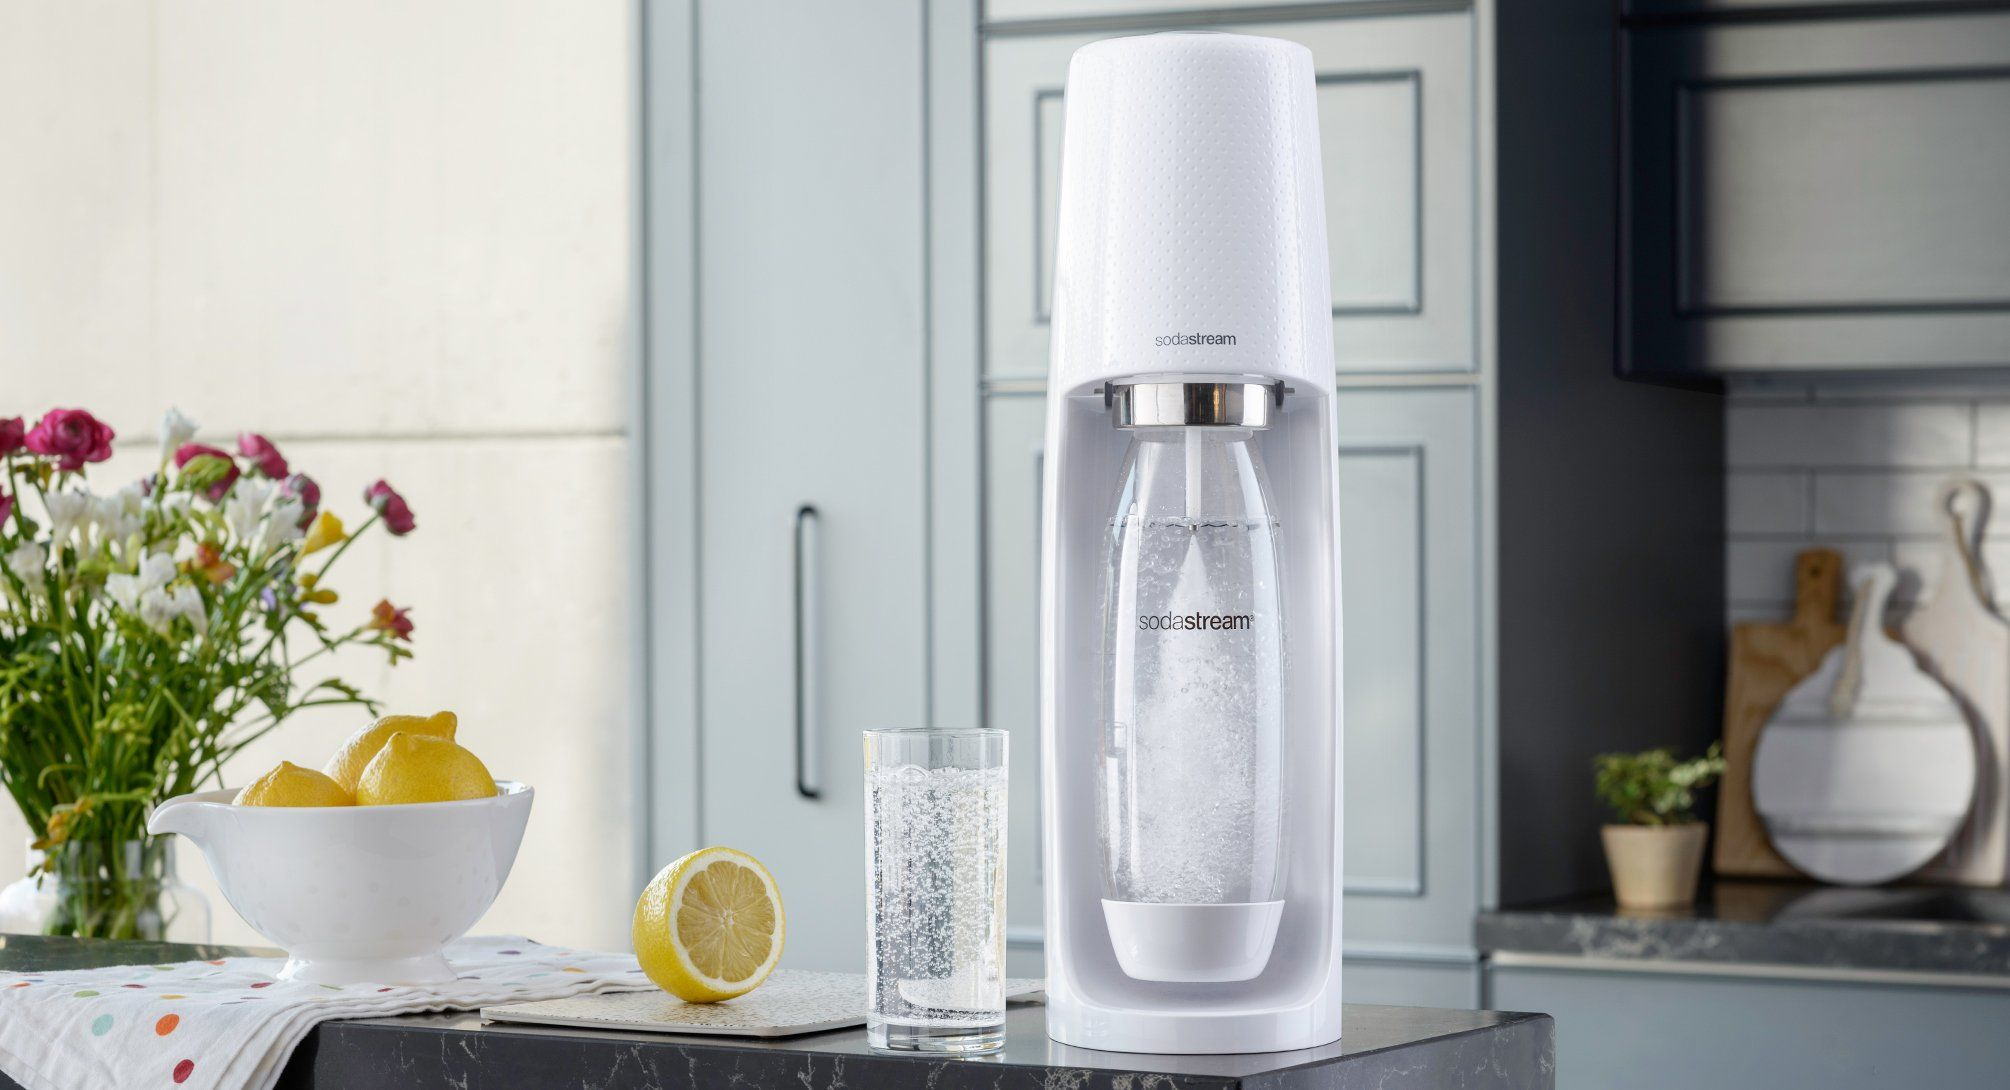 SodaStream About Us